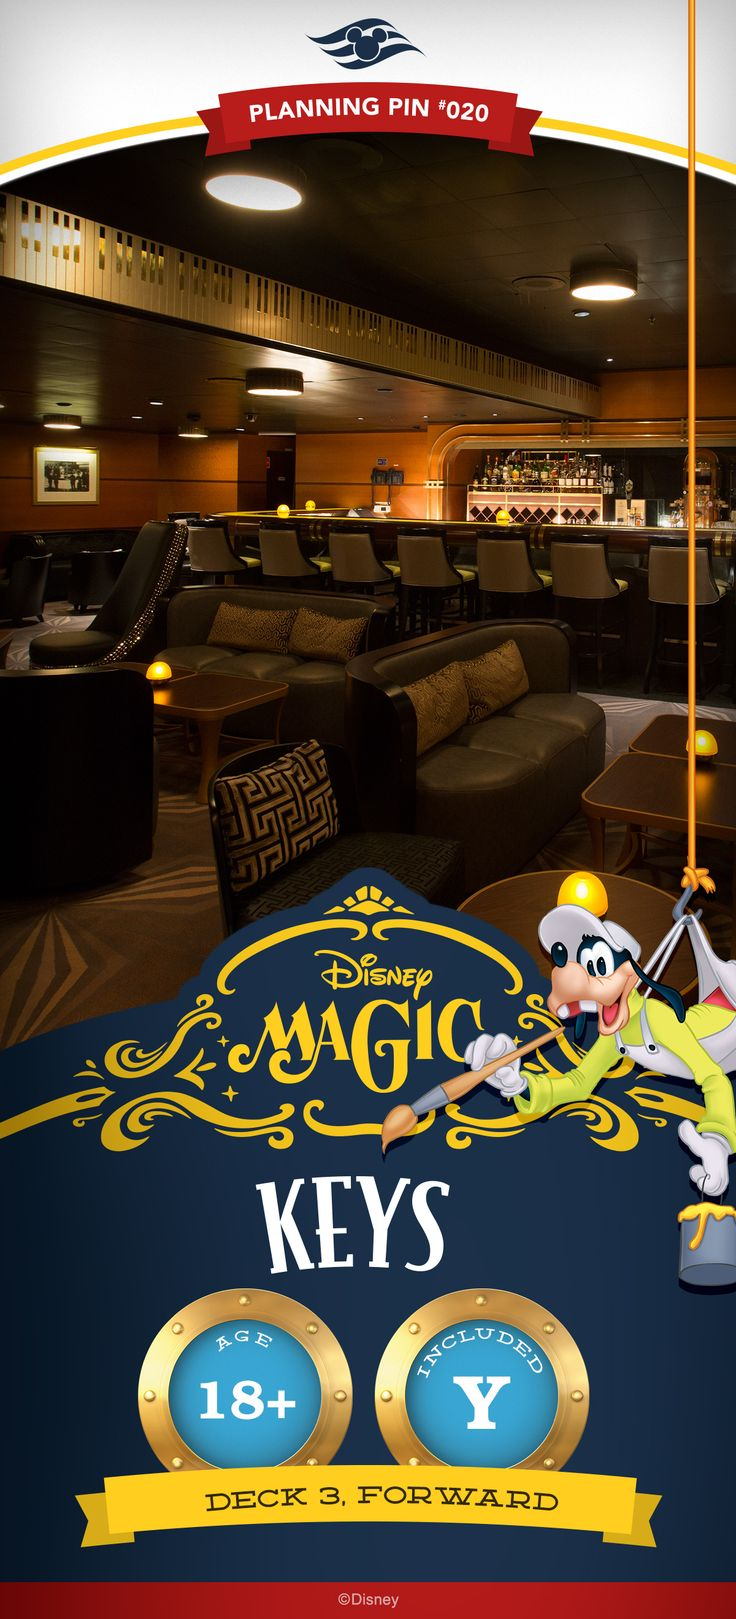 This intimate piano bar recalls the celebrated Golden Age of Hollywood, when low-lit watering holes and swanky lounges graced Tinseltown's famed Sunset Boulevard. Click to learn more about adult activities on a Disney Cruise!